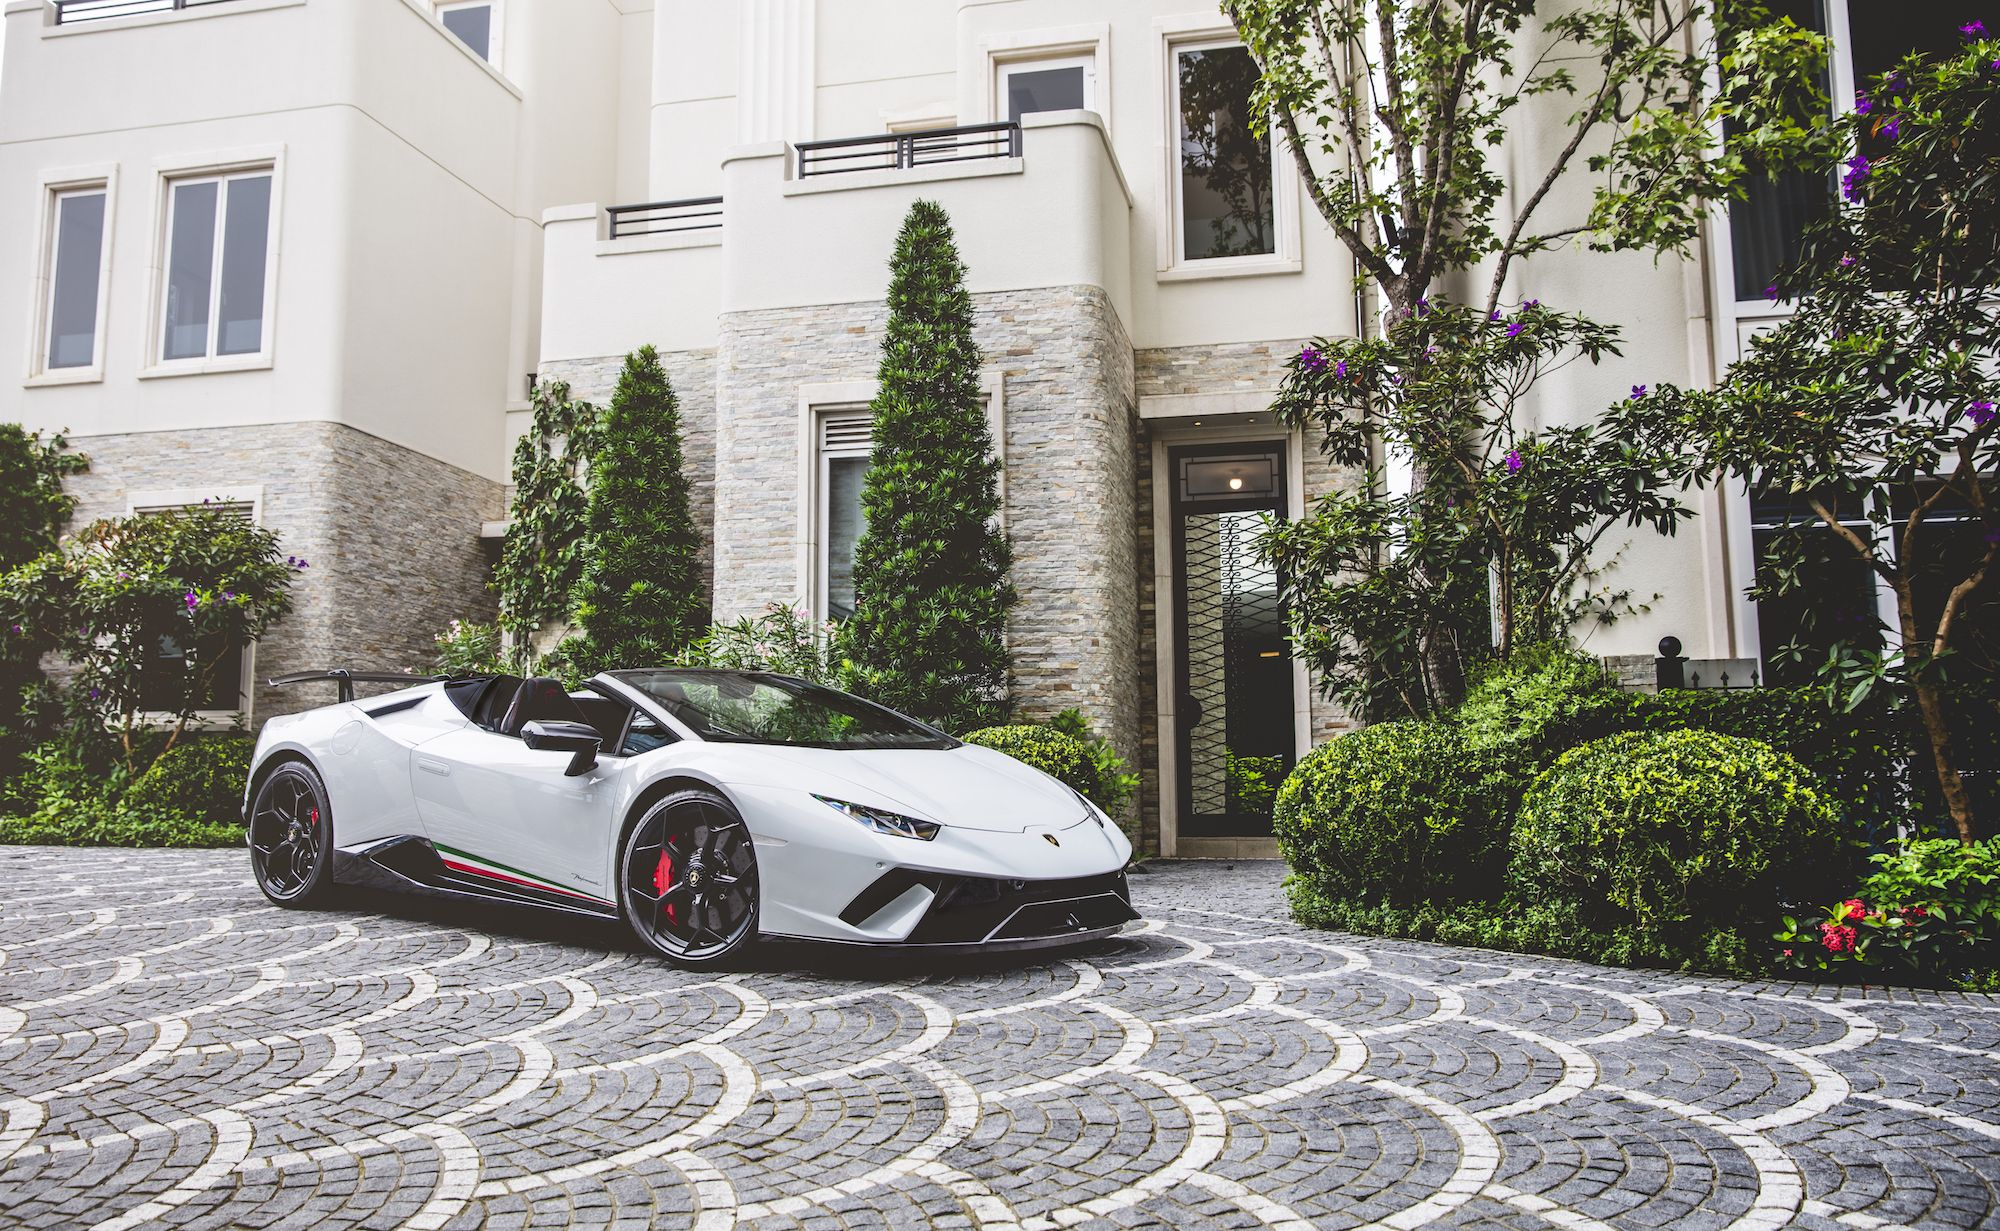 5 Things To Know About The Lamborghini Huracán Performante Spyder